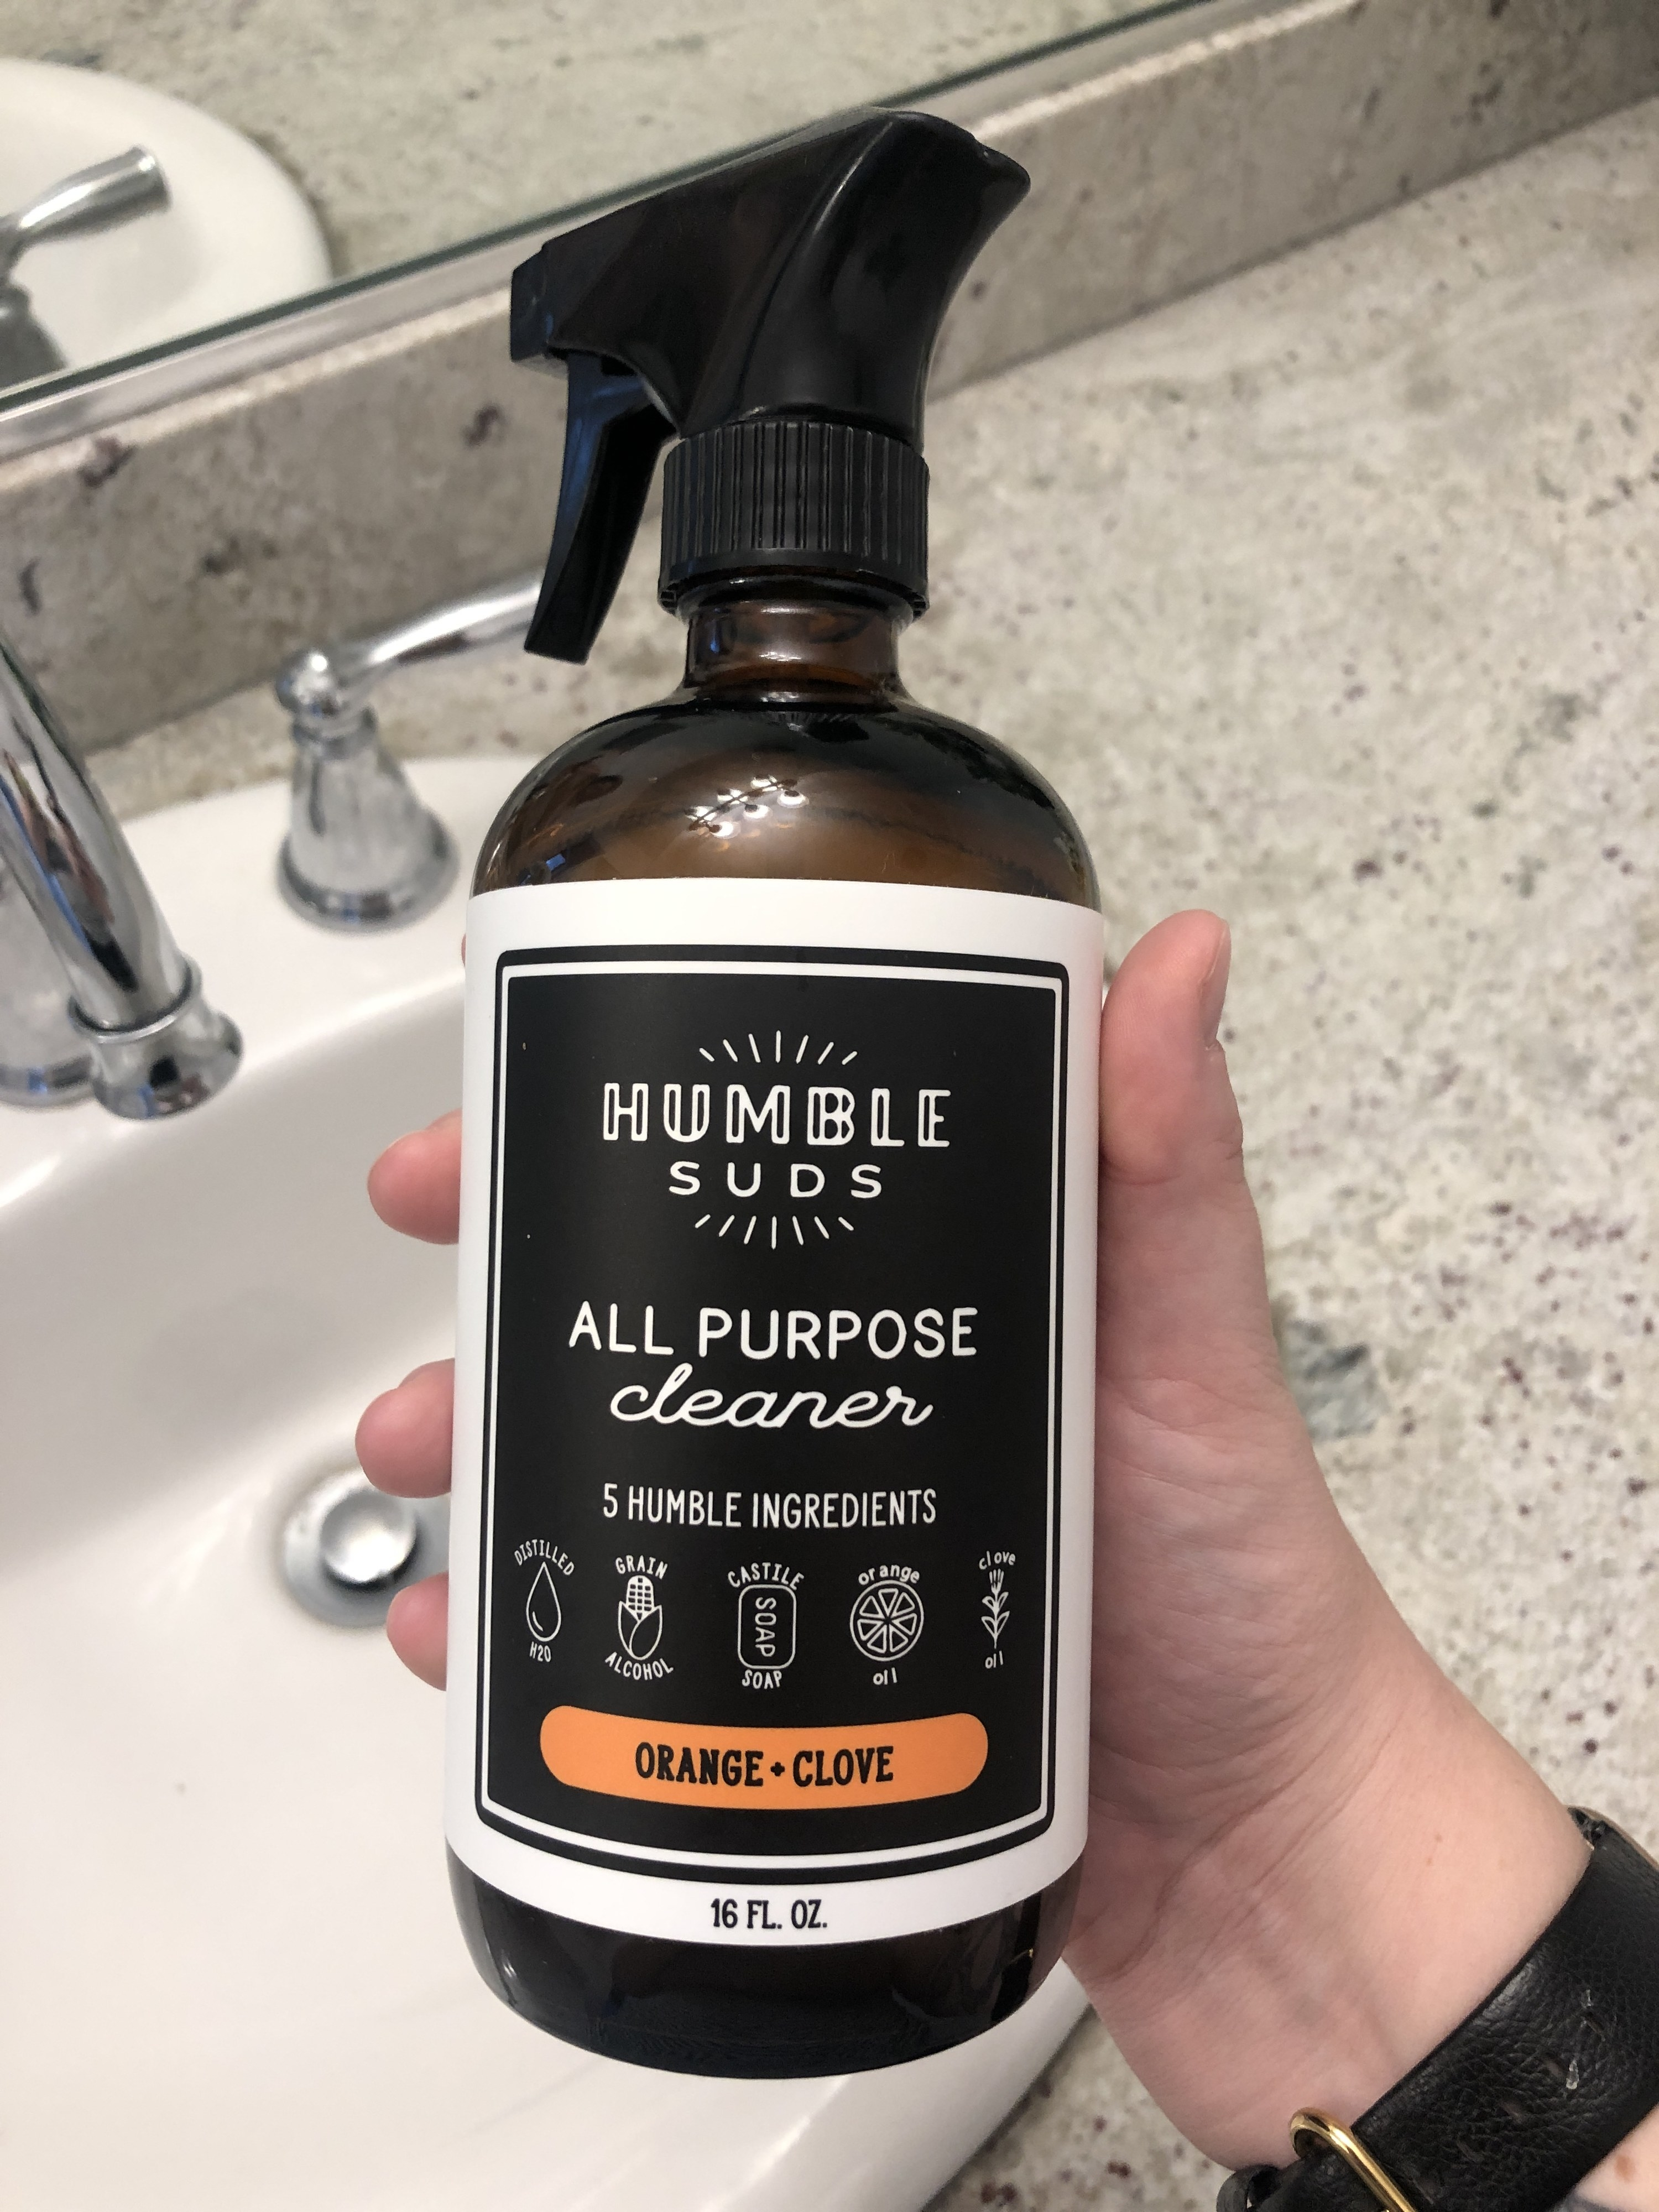 A person holds up the all purpose cleaner in a bathroom